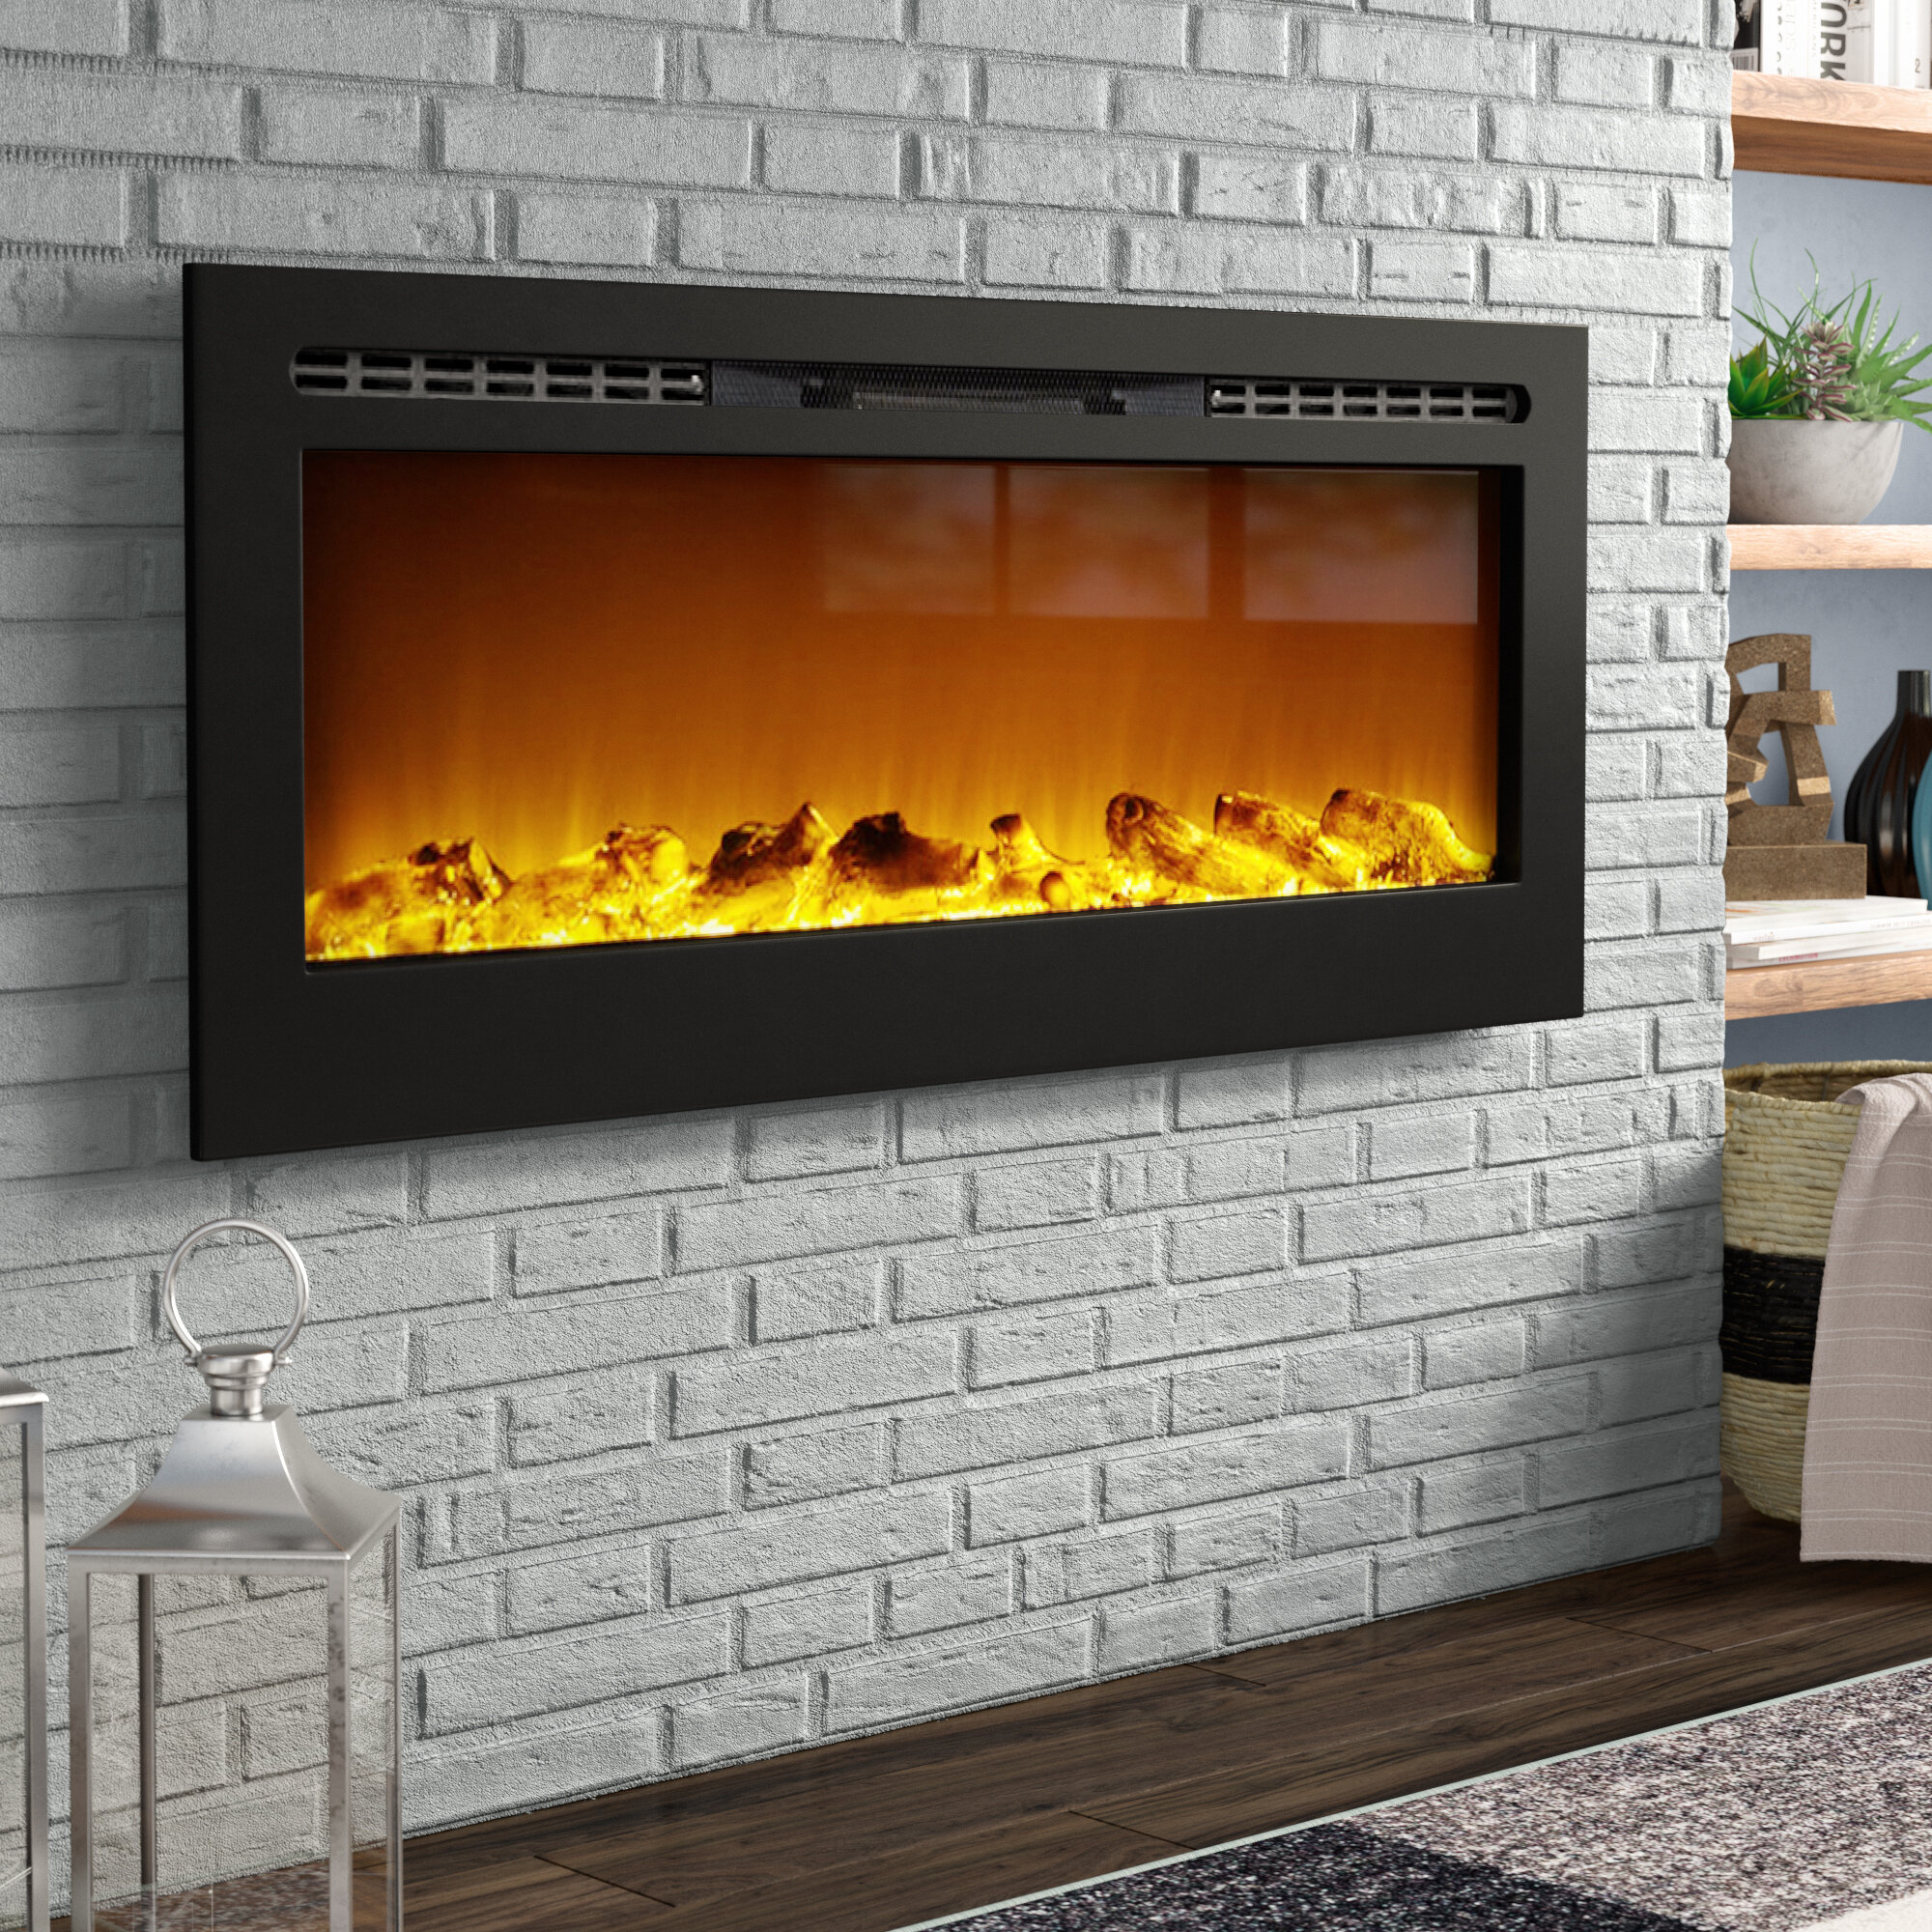 fireplace in electric lexington color p multi built regal ventless mounted recessed flame inch wall